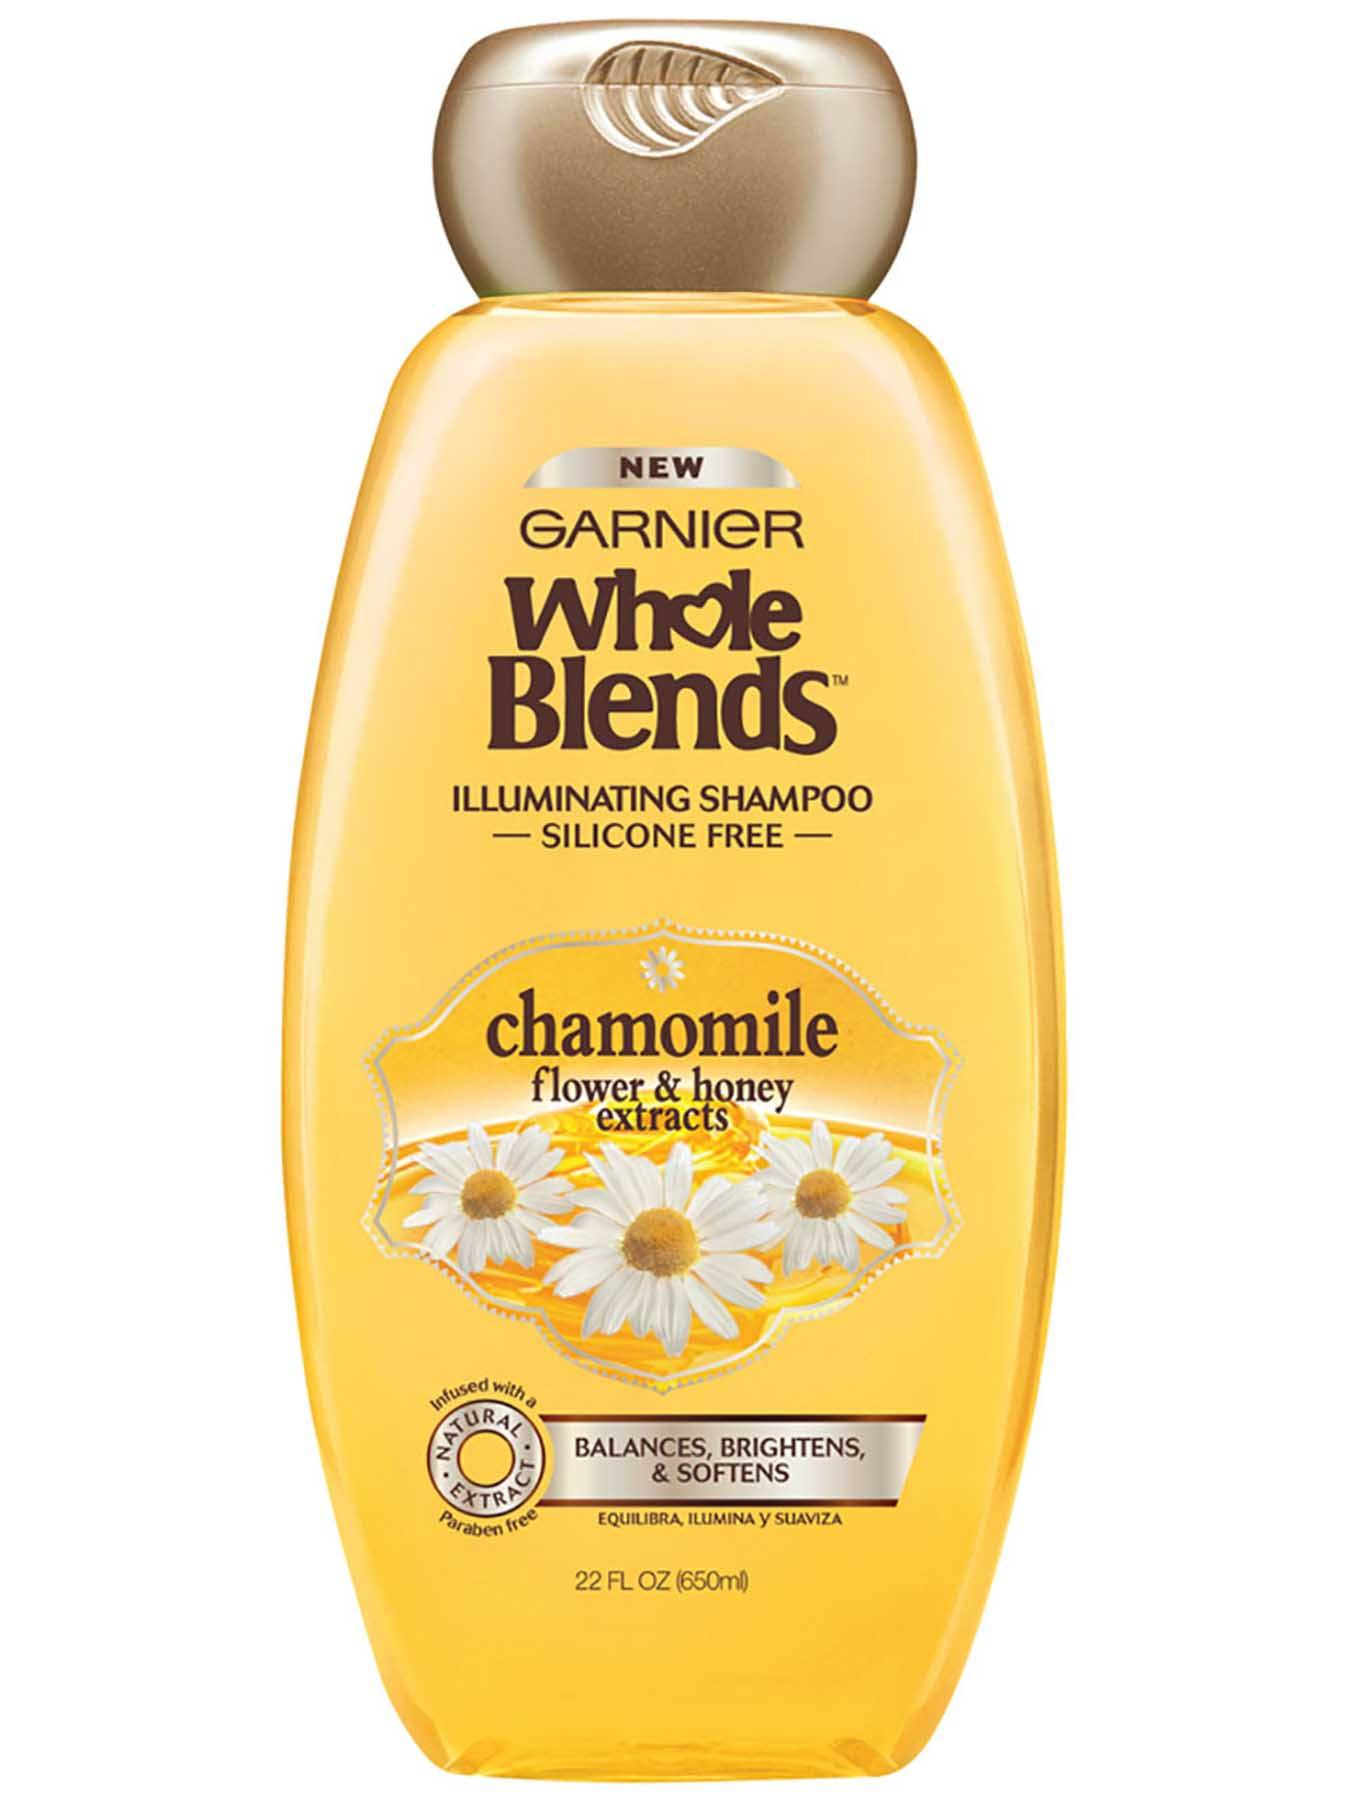 Garnier Whole Blends Illuminating Shampoo Chamomile Flower Honey Extracts Silicone-Free